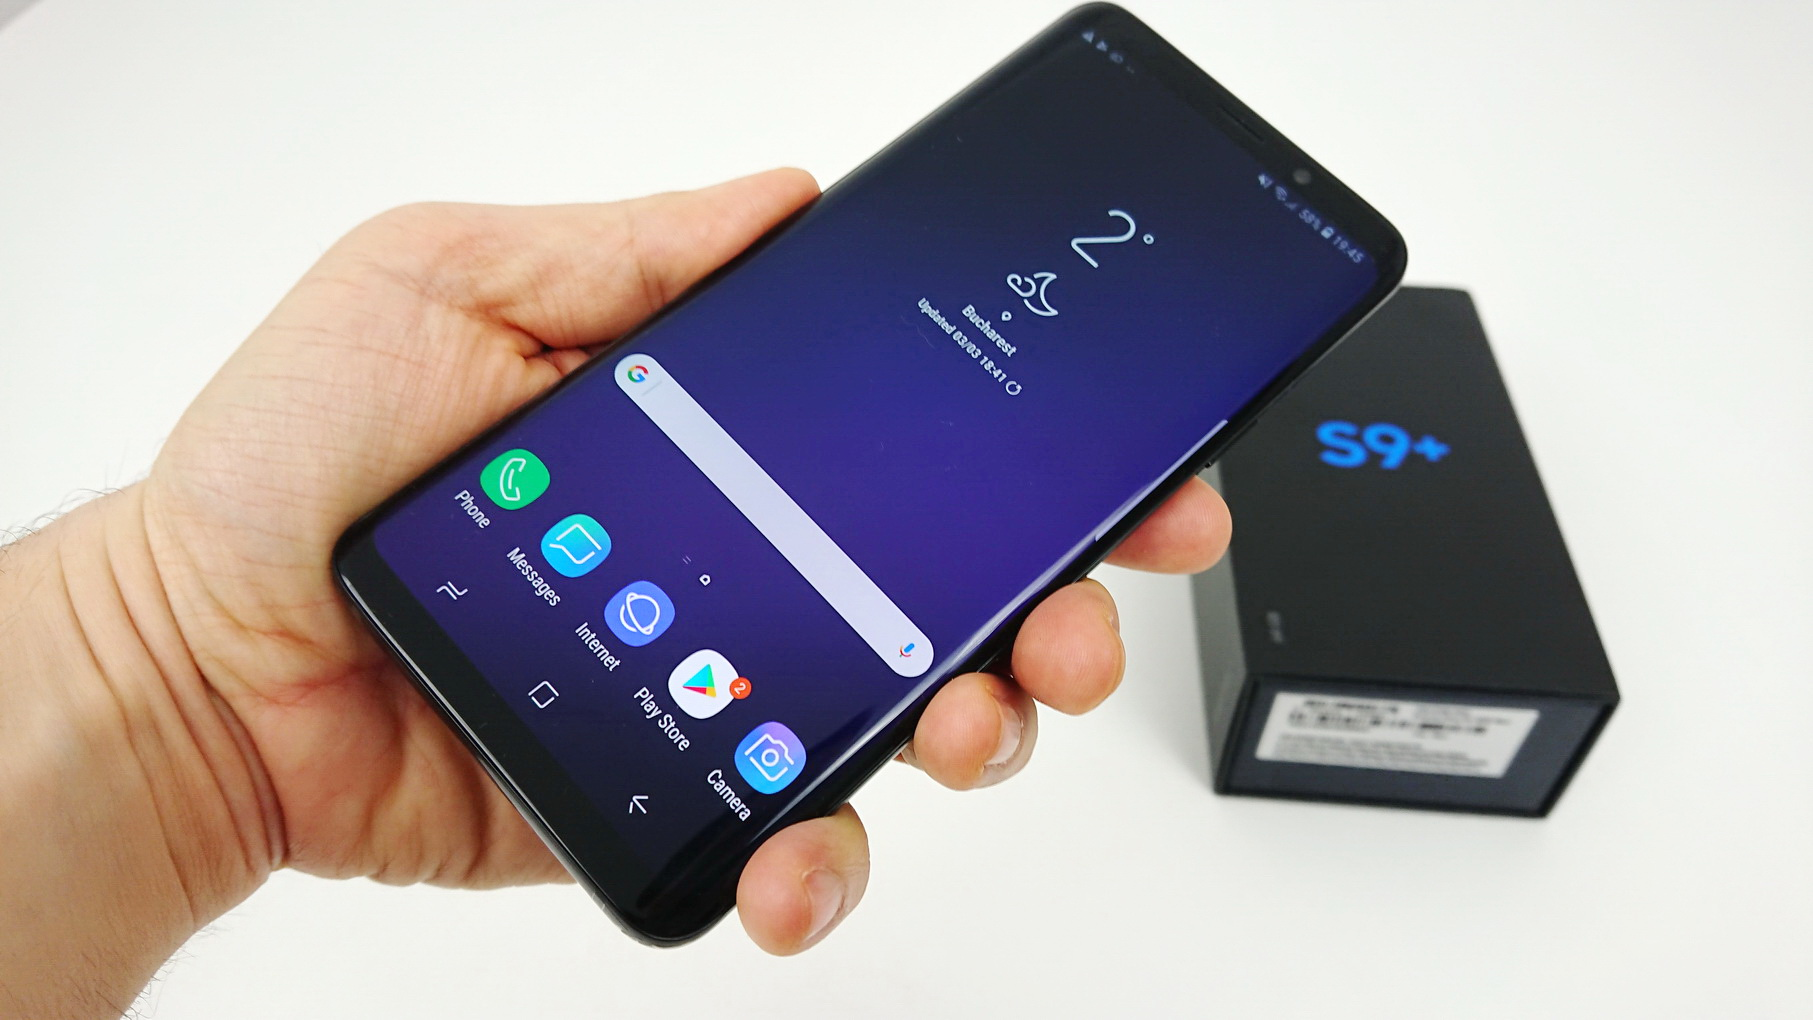 unboxing samsung galaxy s9